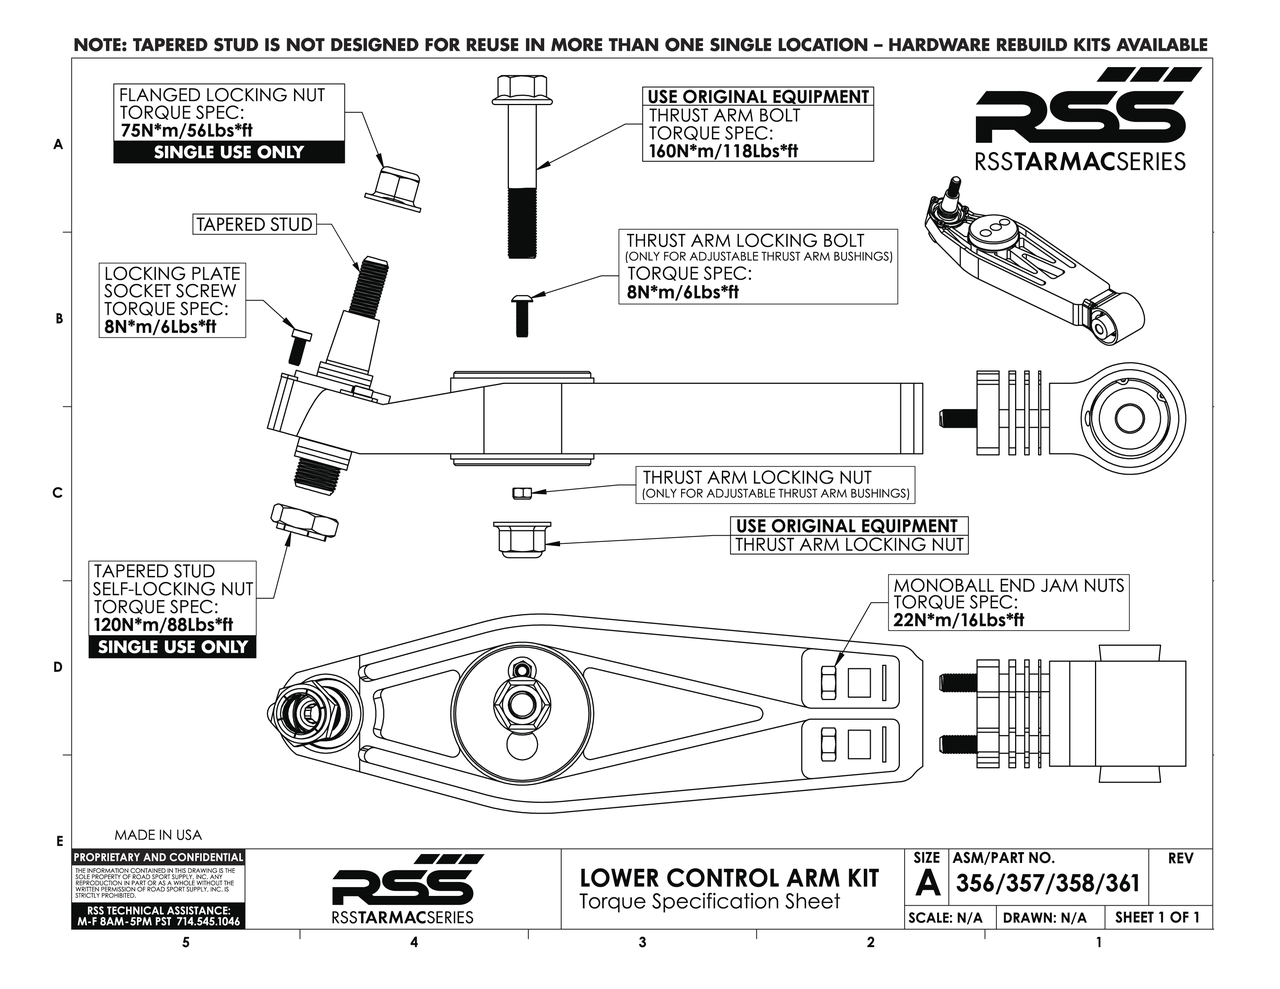 RSS Part # 3-307 XL (+15mm in length) Inner Spherical Bearing (Mono-ball) End Kit: Set of 2. Fits 991 GT3 OE Front Control Arms, 981 GT4 Front and Rear Control Arms, Fits 986, 987, 996, 997 with GT3/RS OE Front or Rear Split Control Arms, Fits any RSS Tarmac Series Lower Control Arm or replaces any OE Porsche Split Arm Inner Bushing. Provides a Bolt On Mono-Ball Performance Solution replacing rubber mounted OE inner mono-balls. The Extra Long Monoball Housing Design (+15mm) allows for more negative camber adjustment / gain vs. standard aftermarket or OE inner bushings. The XL Design allows for proper stud engagement between inner and outer control arm with when running aggressive negative camber settings. For camber shim kits see RSS Part # 308.